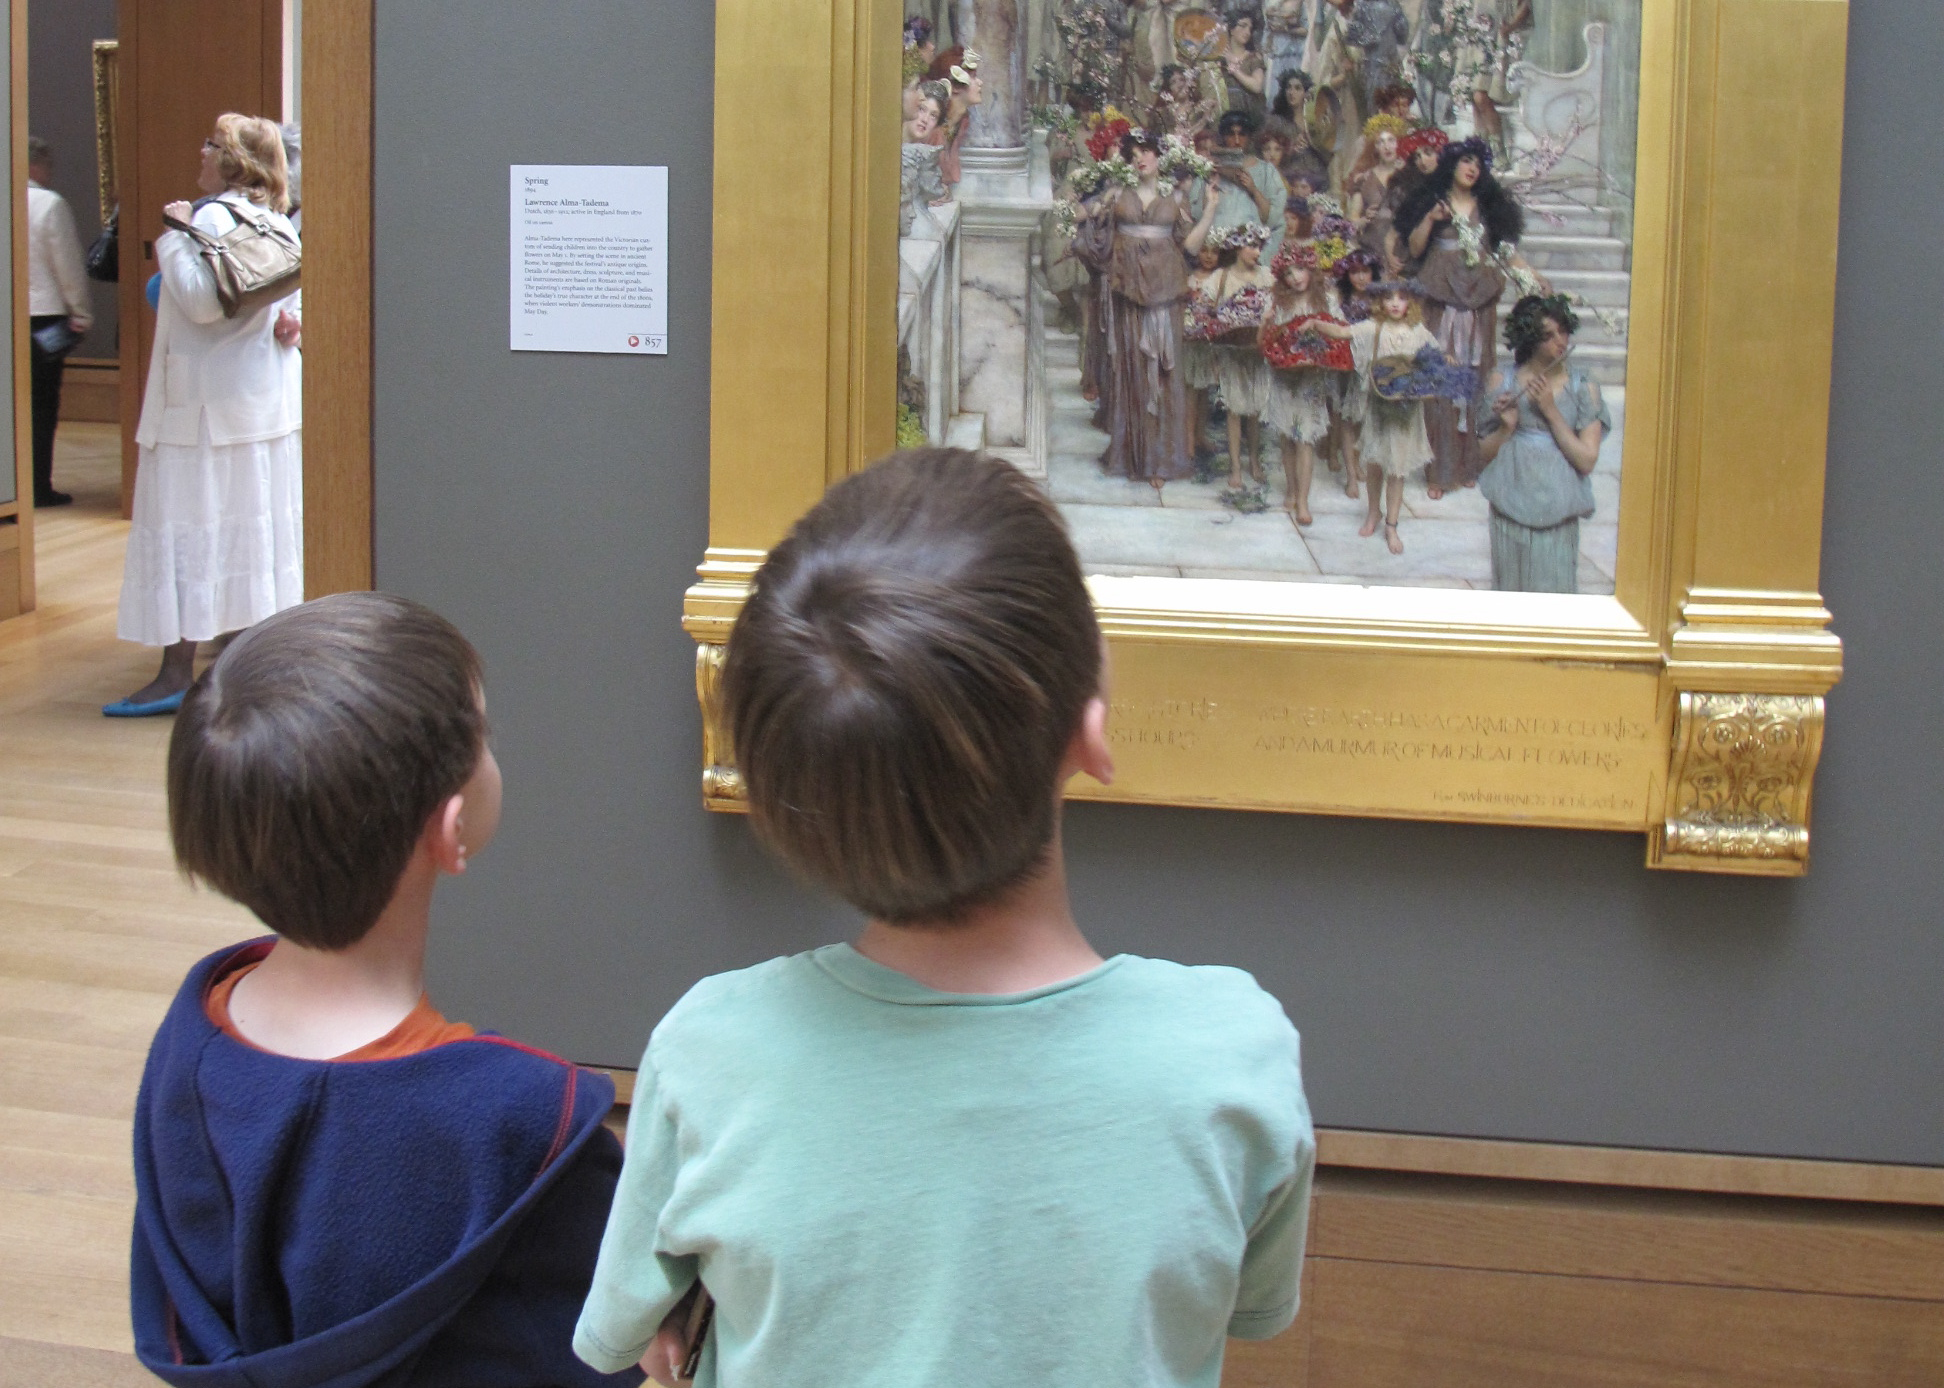 Upstairs We Found Our First Mystery Object The Painting Spring By Dutch Artist Alma Tadema Above A Question On Back Of This Paintings Activity Card